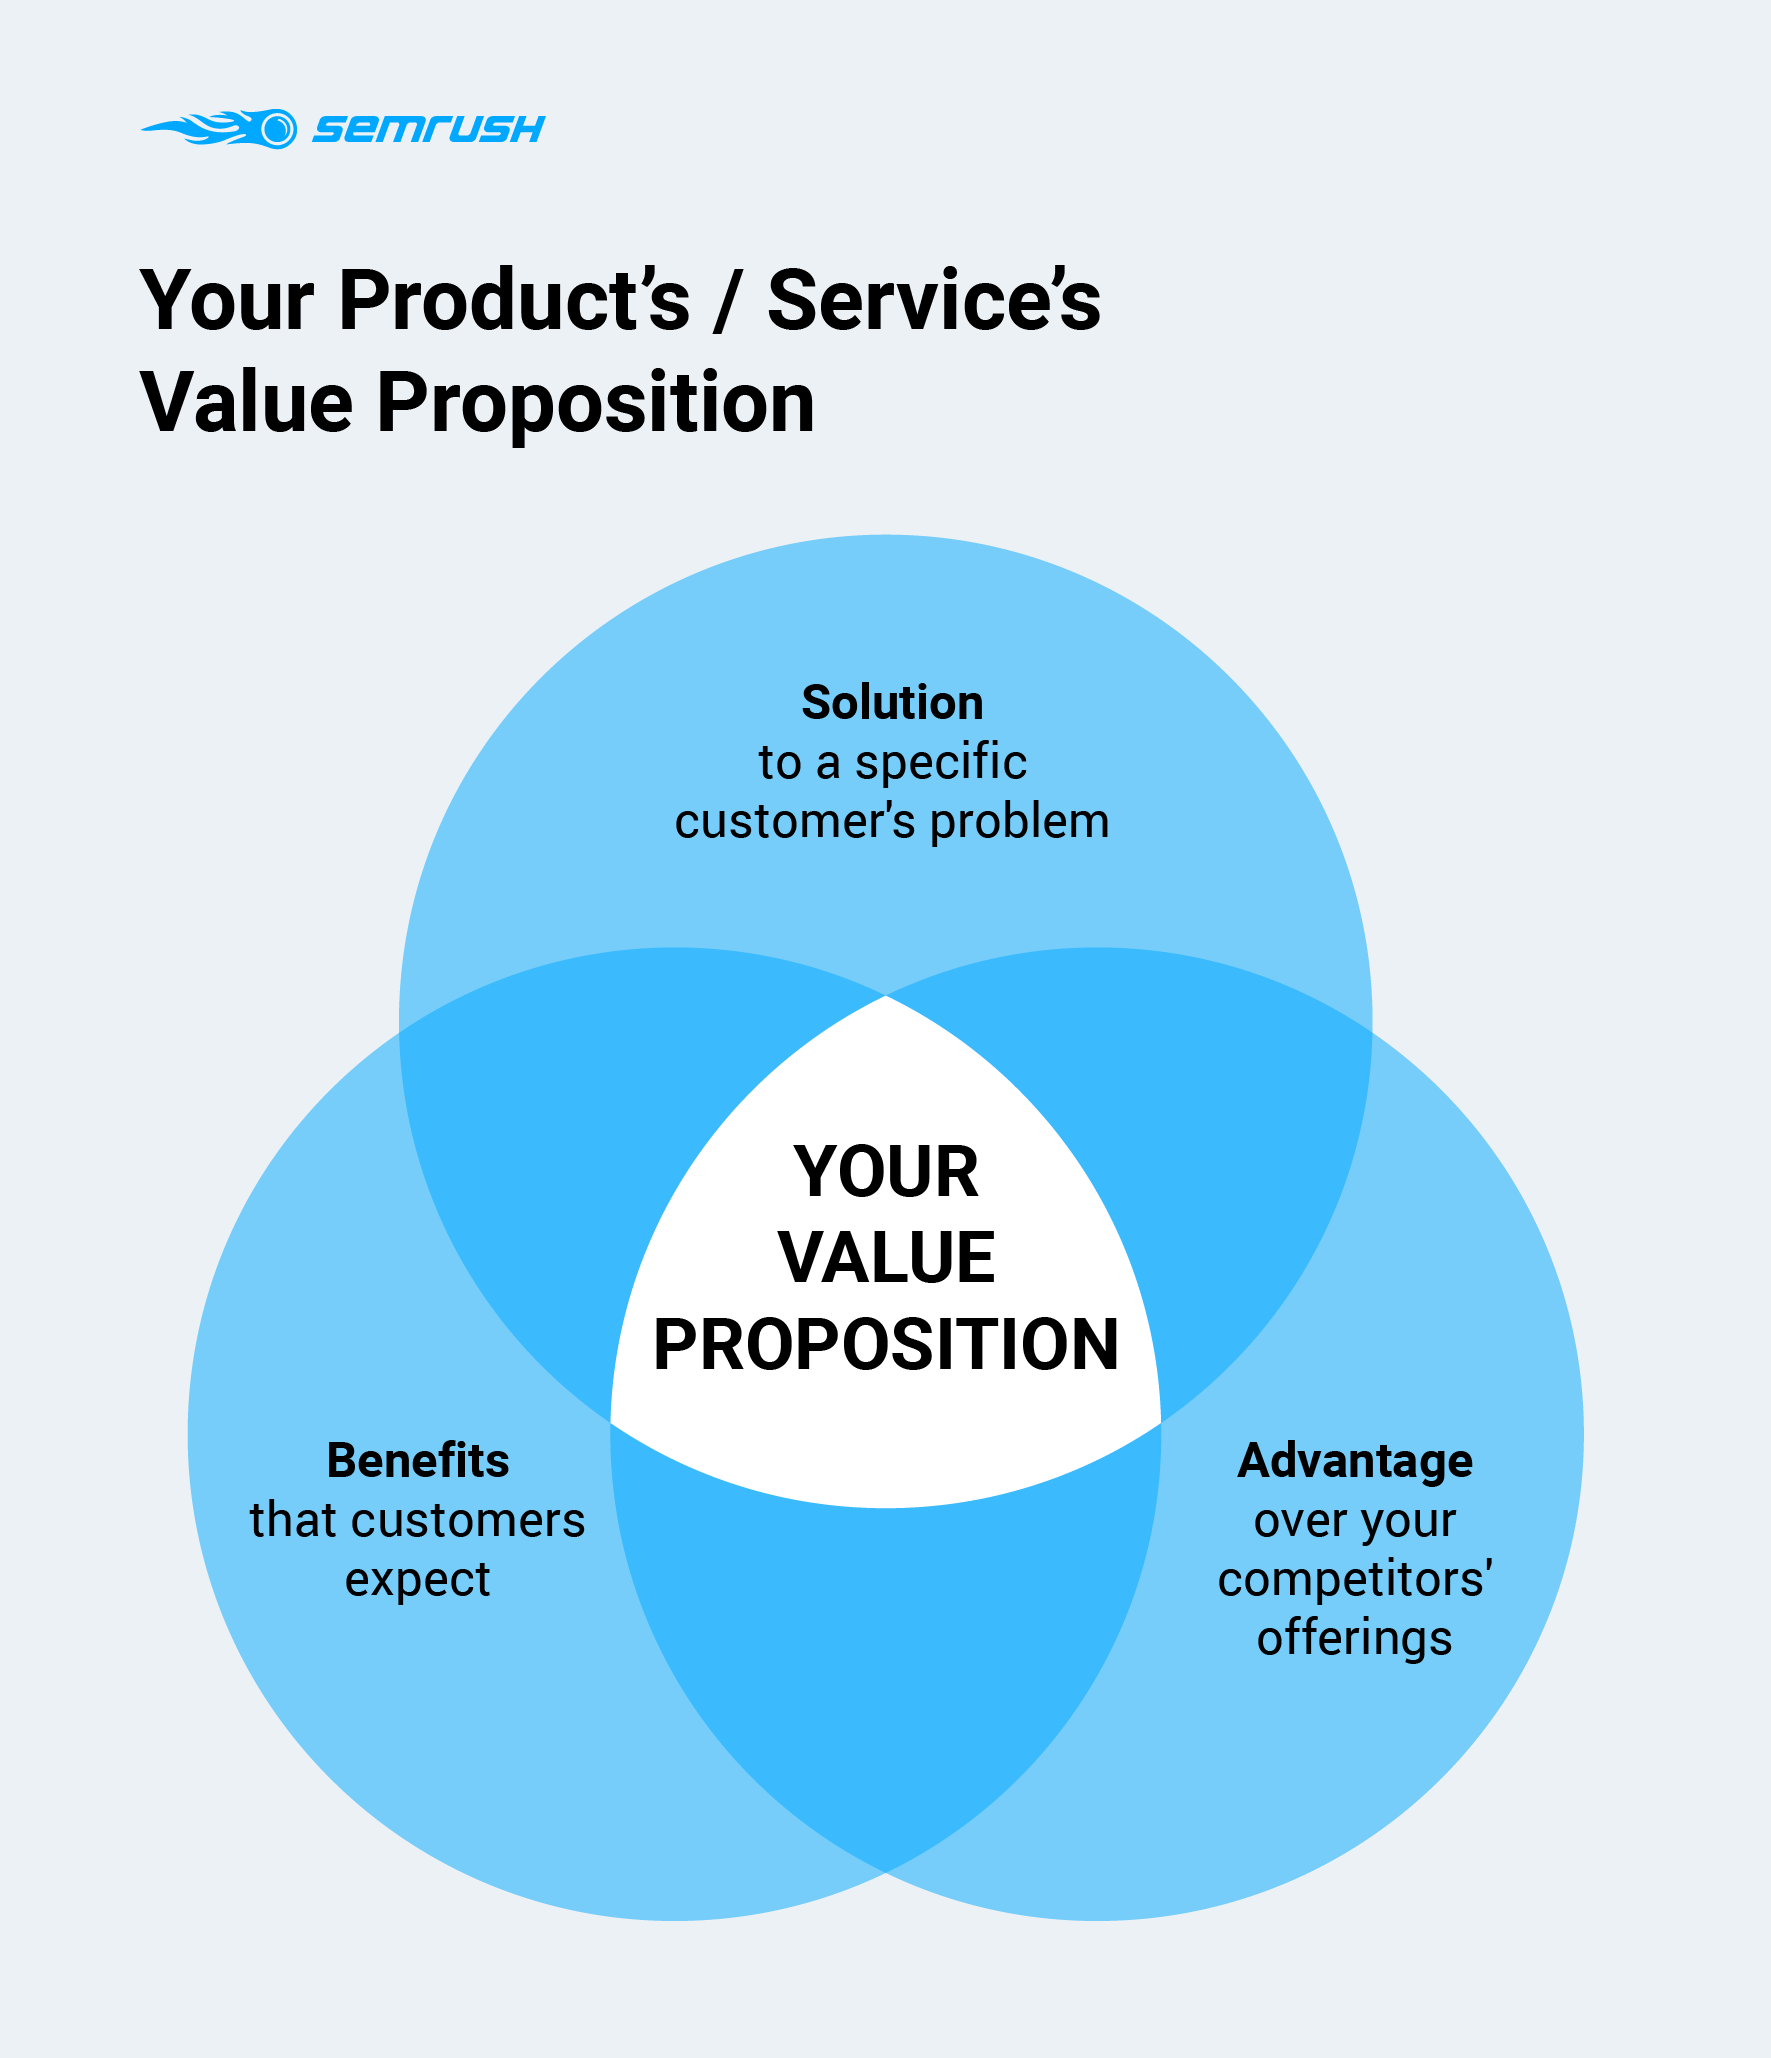 Product's or Service's value proposition